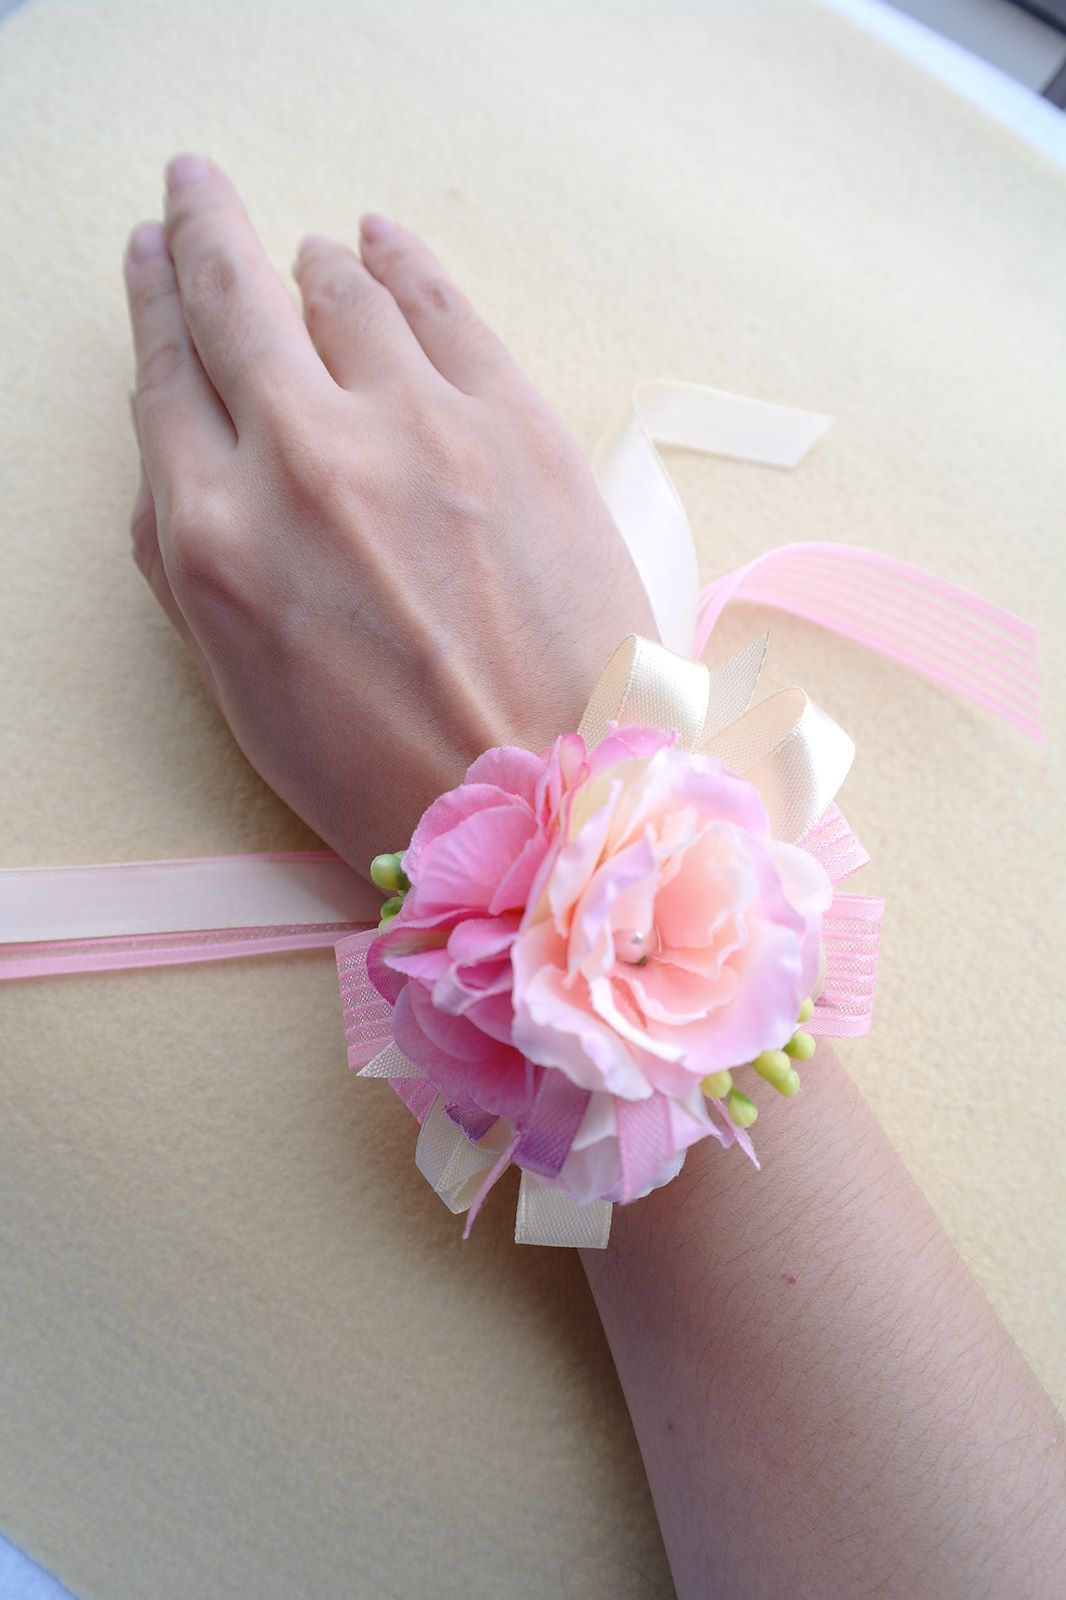 Inakabeads Handmade Fabric Flower Accessories: 2015